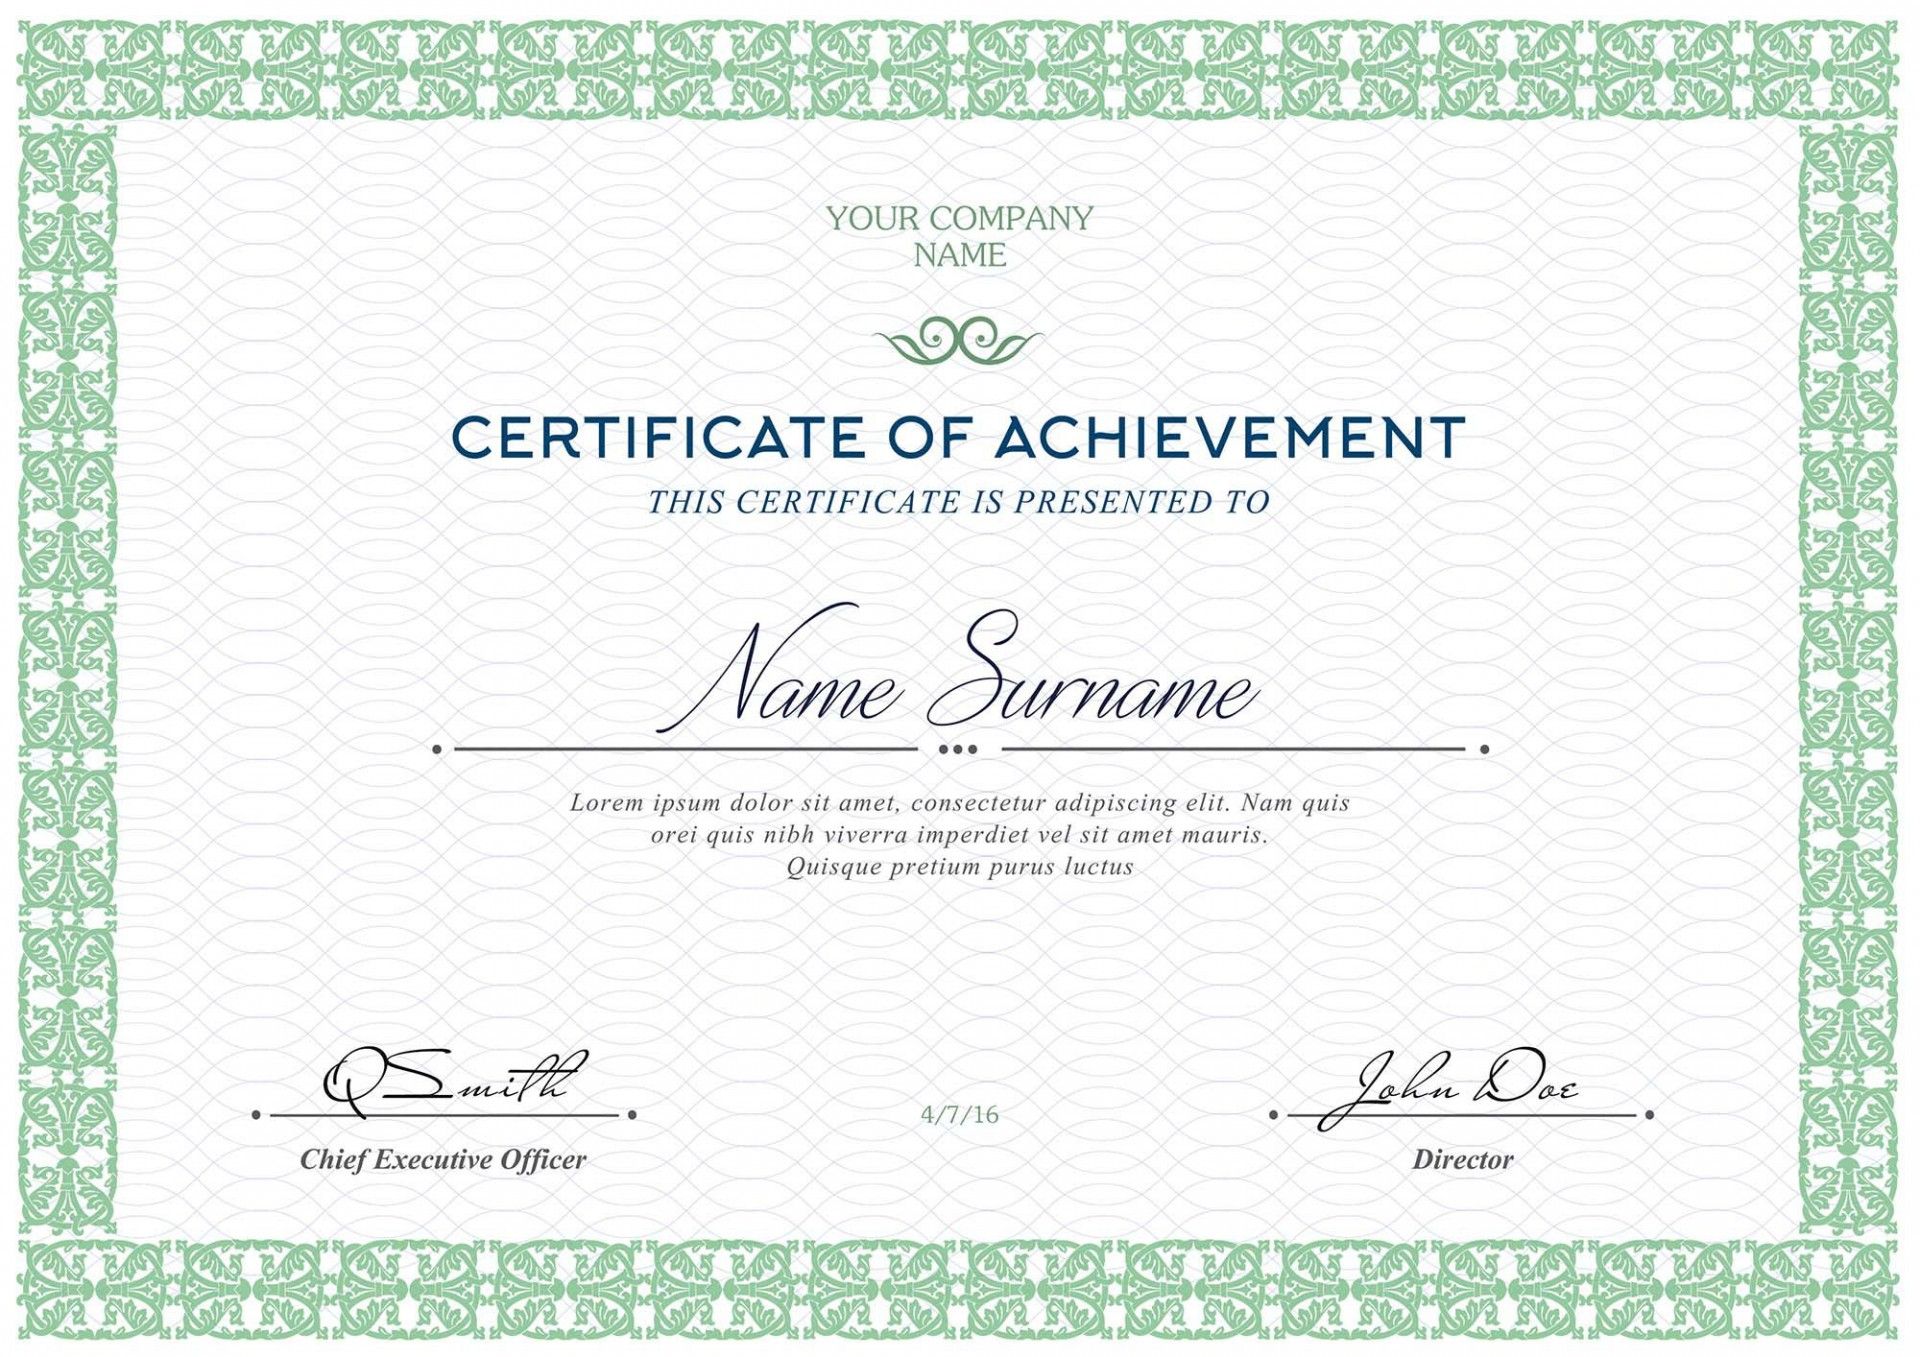 009 Shocking Free Blank Certificate Template High Def  Templates For Microsoft Word1920